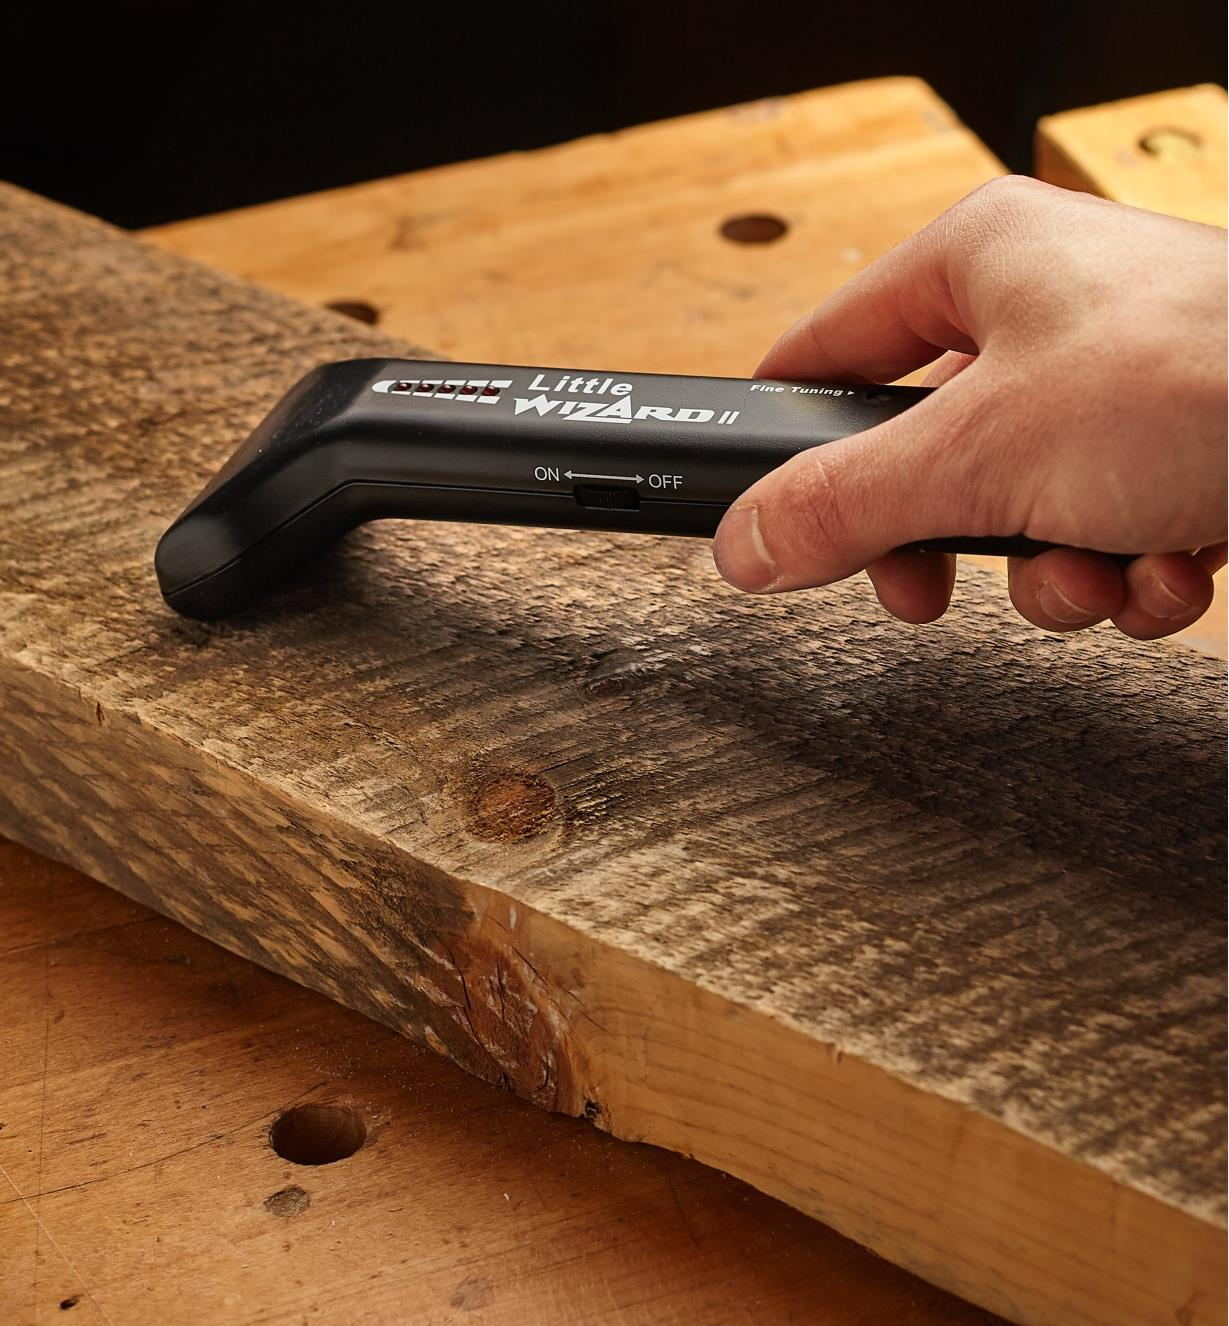 Scanning a piece of lumber with the metal detector